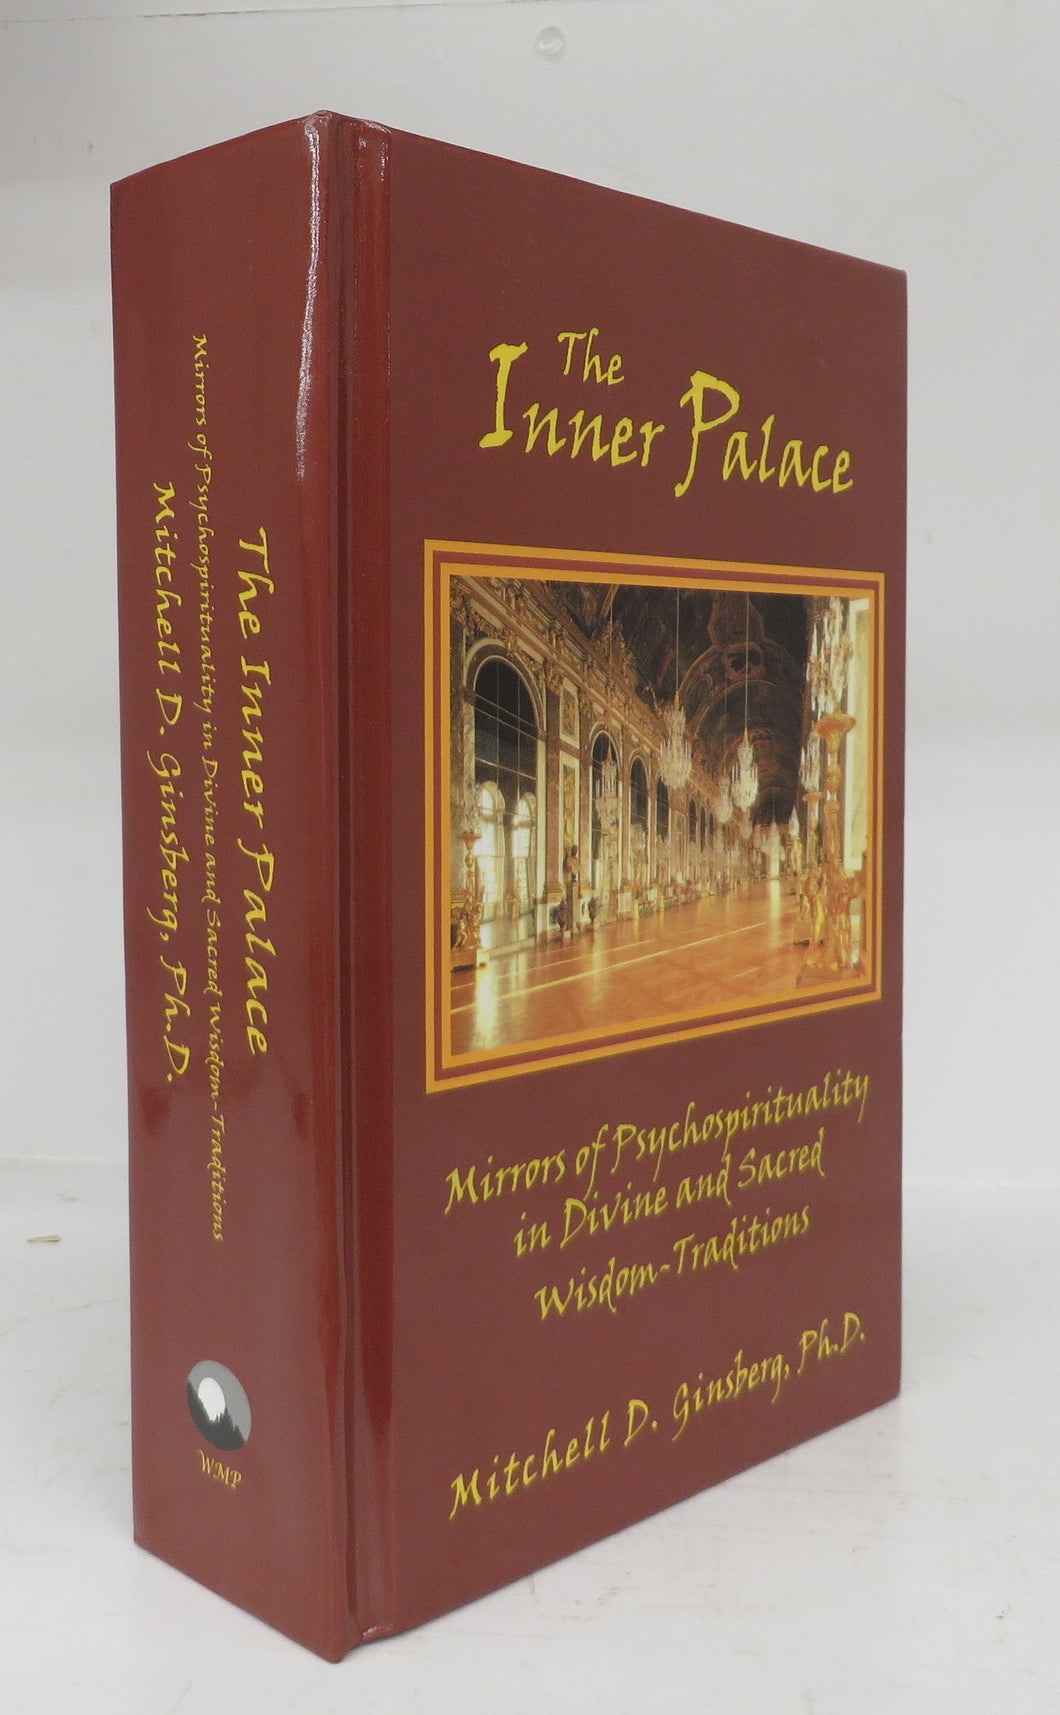 The Inner Palace: Mirrors of Psychospirituality in Divine and Sacred Wisdom Traditions